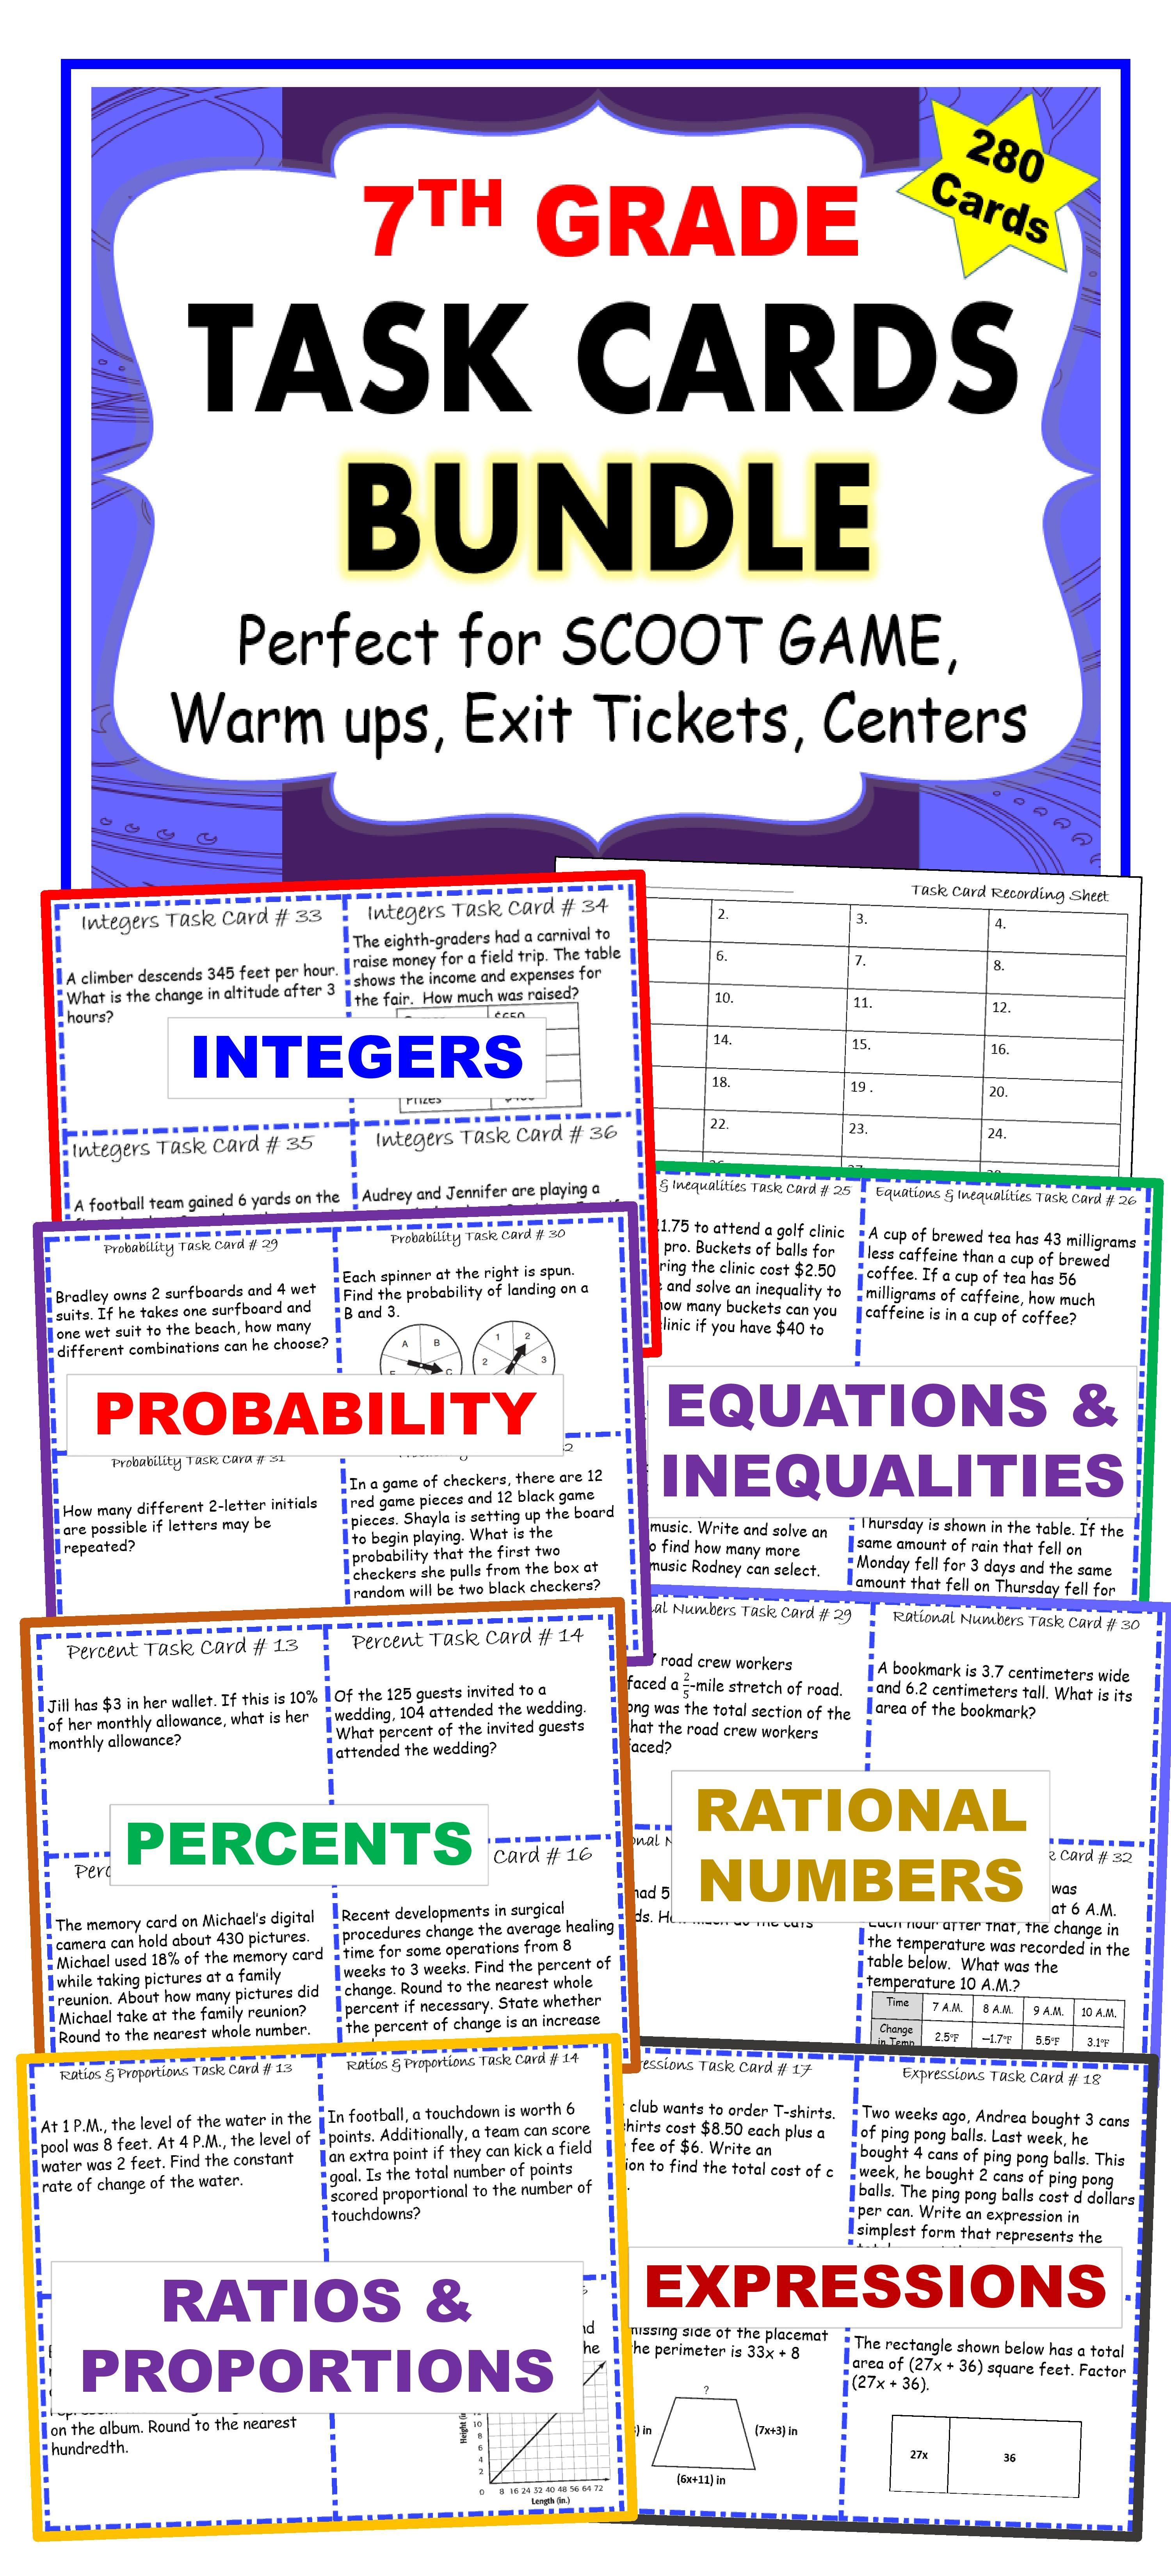 7th Grade Math Common Core WORD PROBLEM TASK CARDS { BUNDLE - 280 Cards}